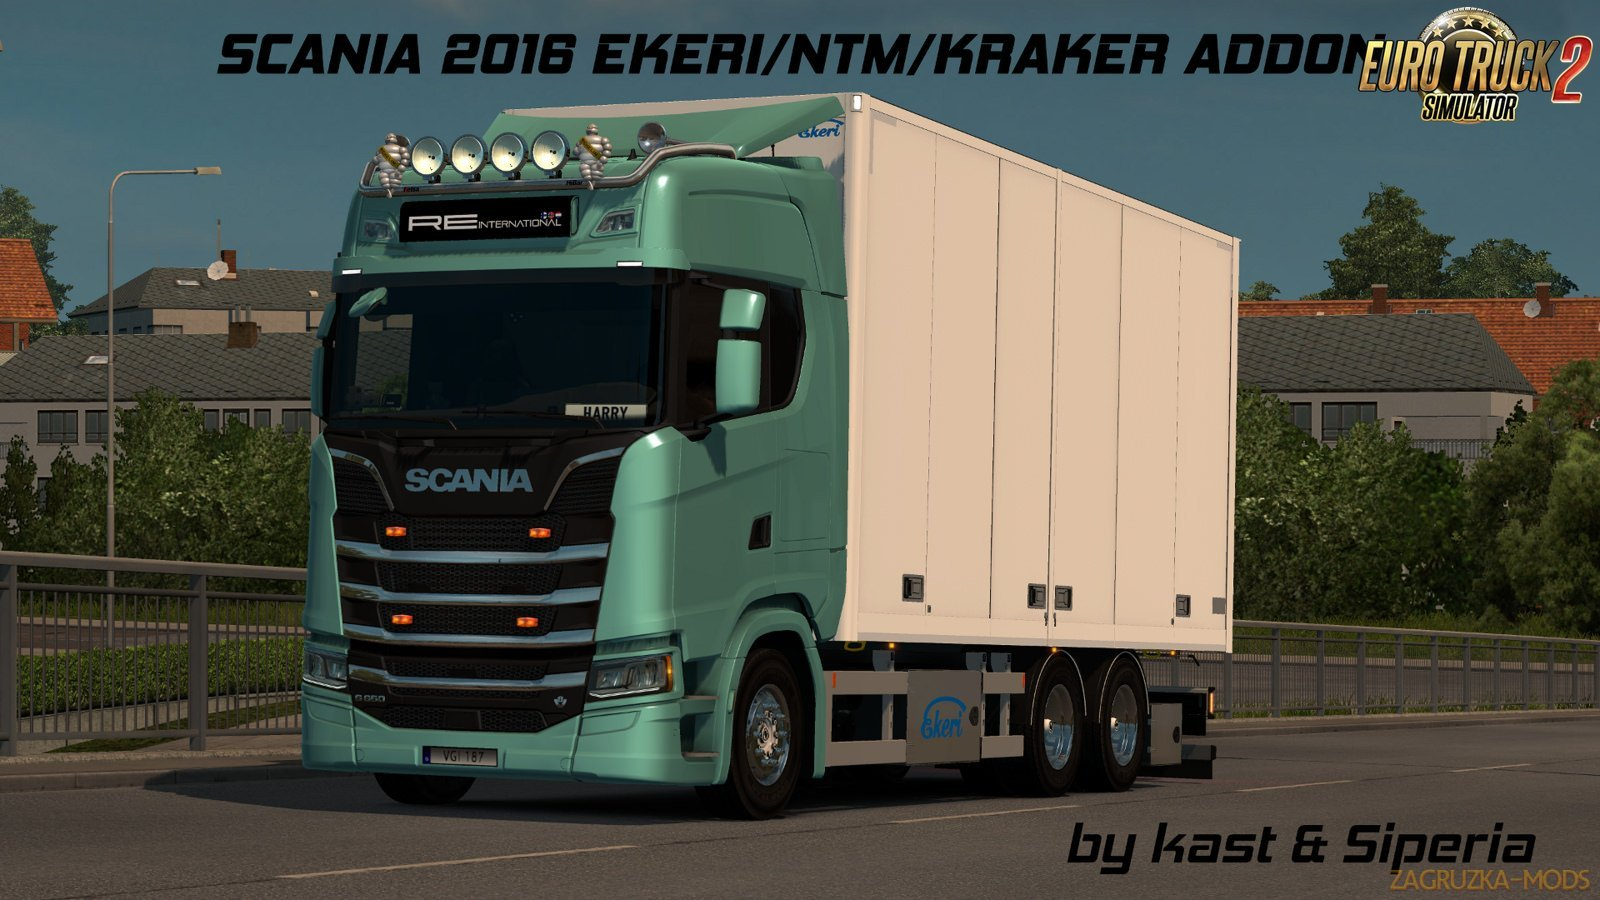 Kraker/NTM/Ekeri Tandem addon for Next Gen Scania by Siperia [1.33.x]